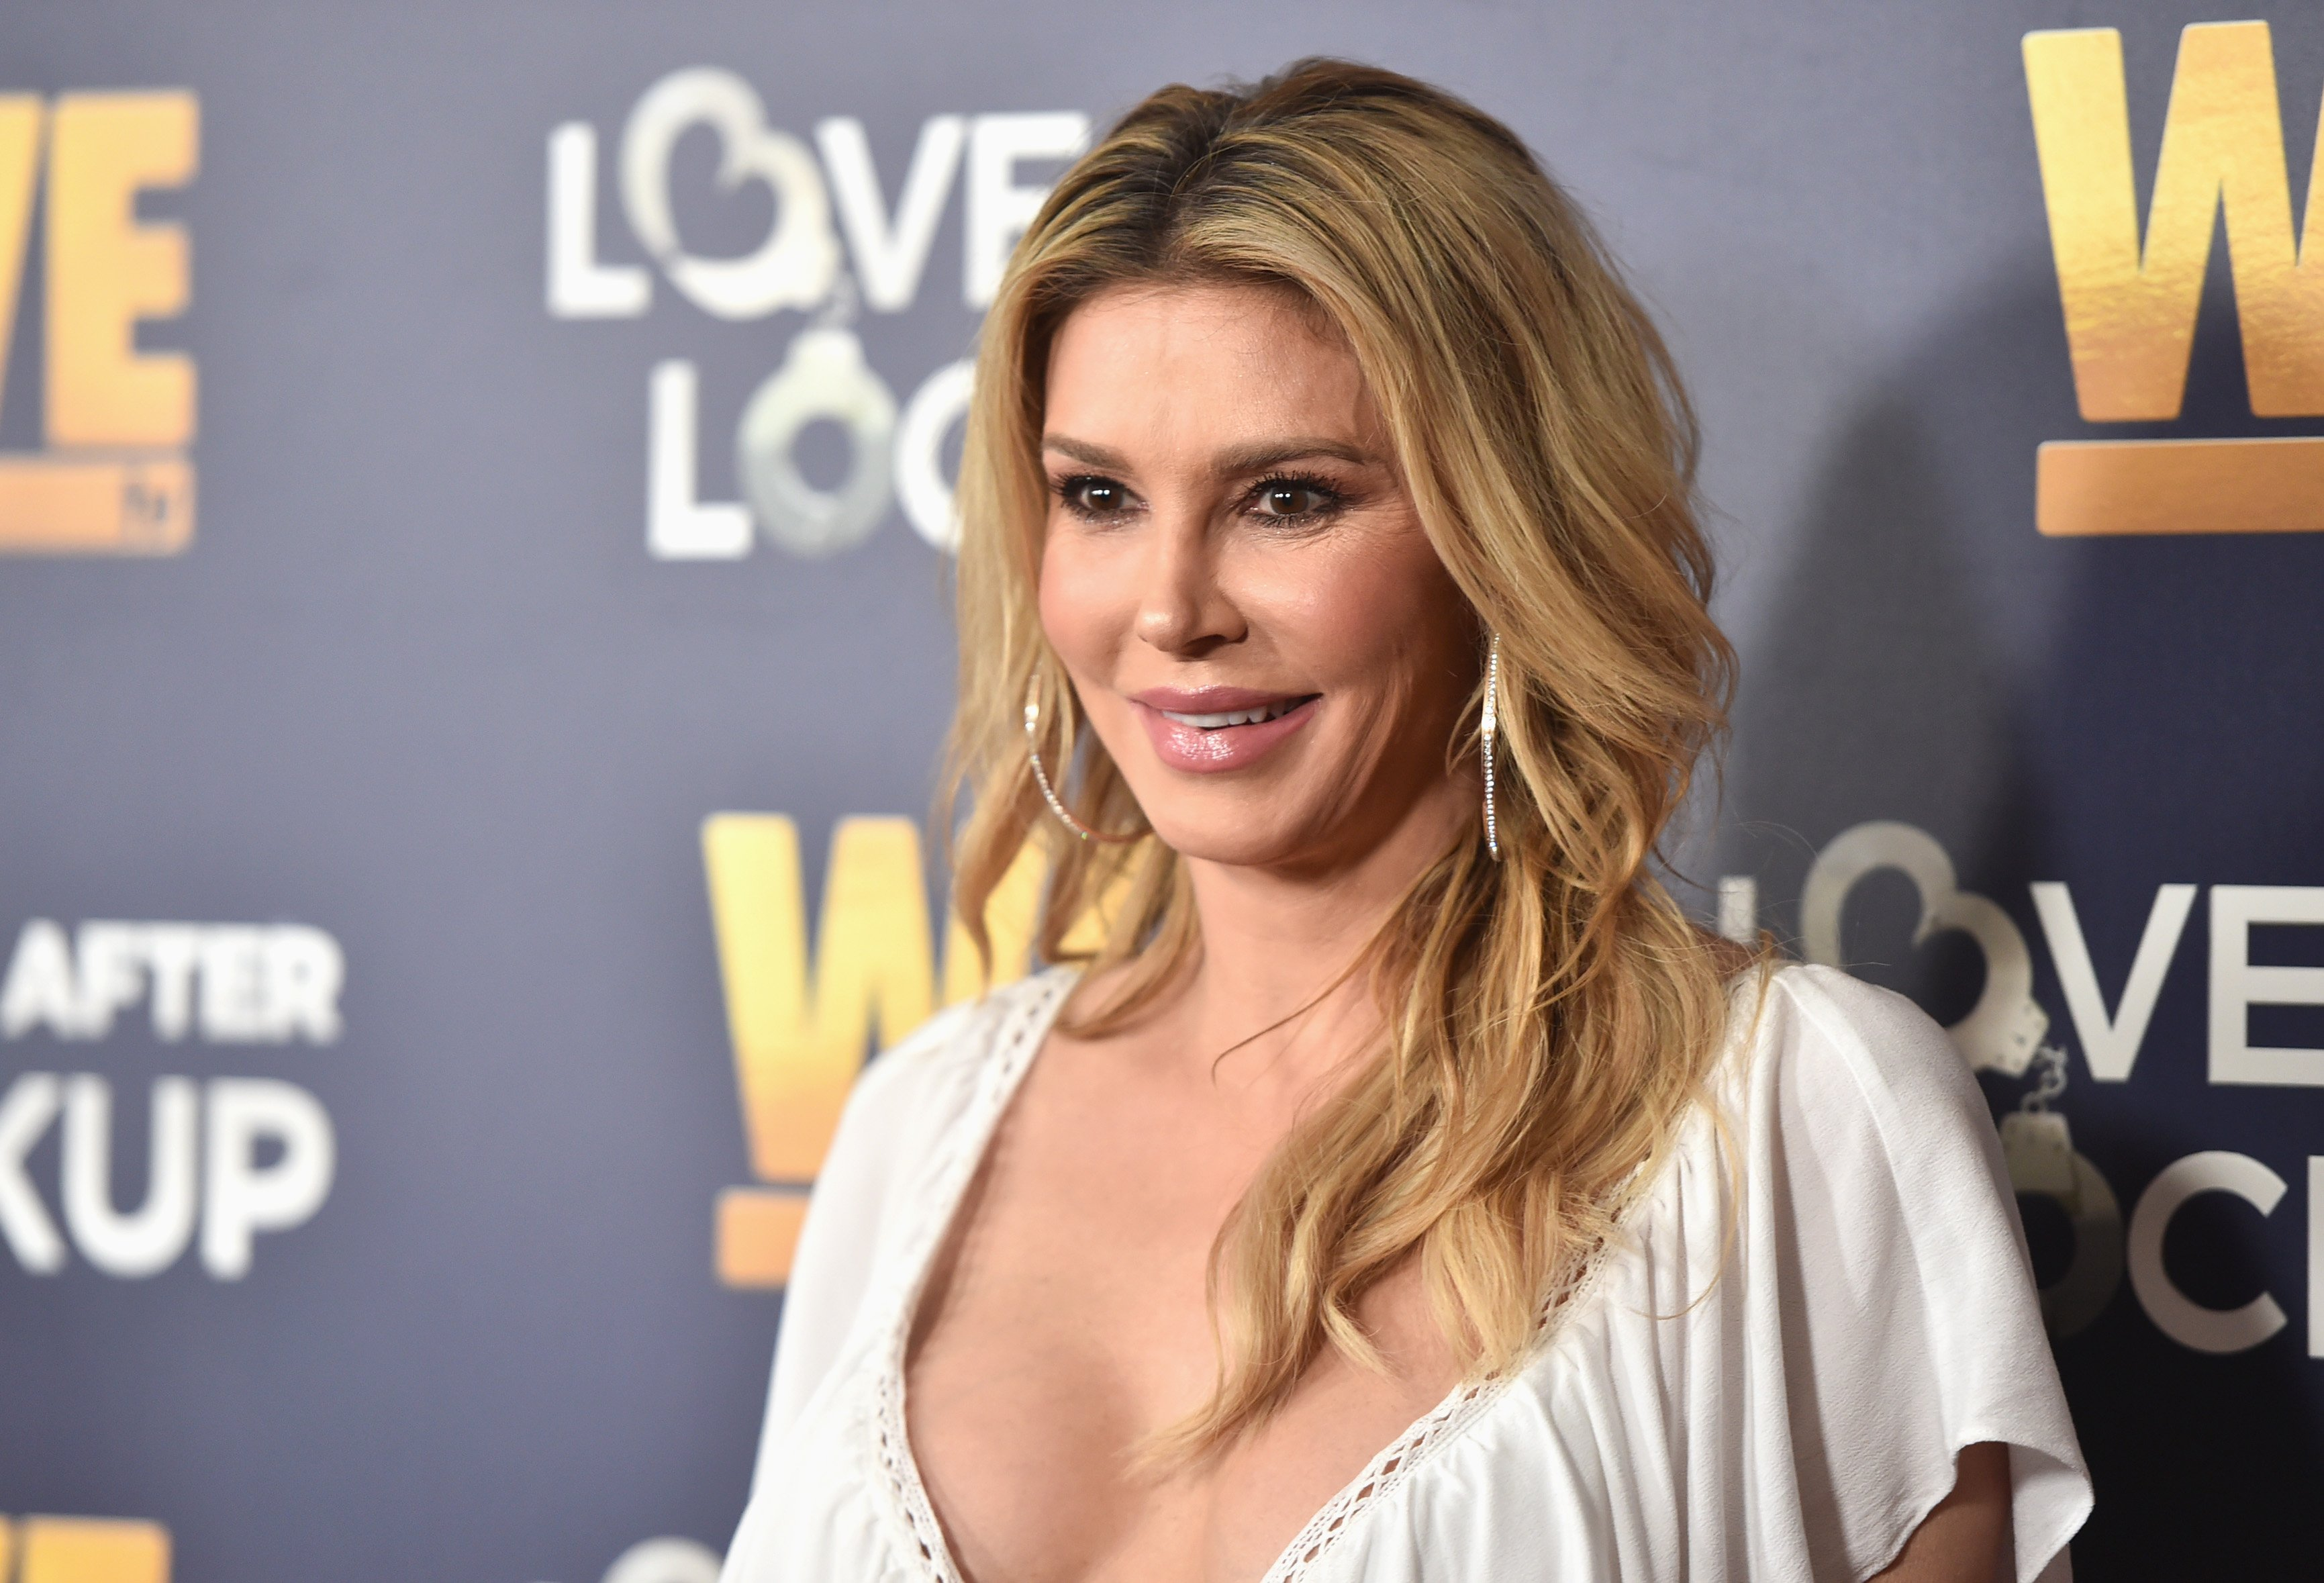 """Brandi Glanville attends WE TV's celebration of the return of """"Love After Lockup"""" with panel, """"Real Love: Relationship Reality TV's Past, Present & Future,"""" at The Paley Center for Media on December 11, 2018 in Beverly Hills, California 